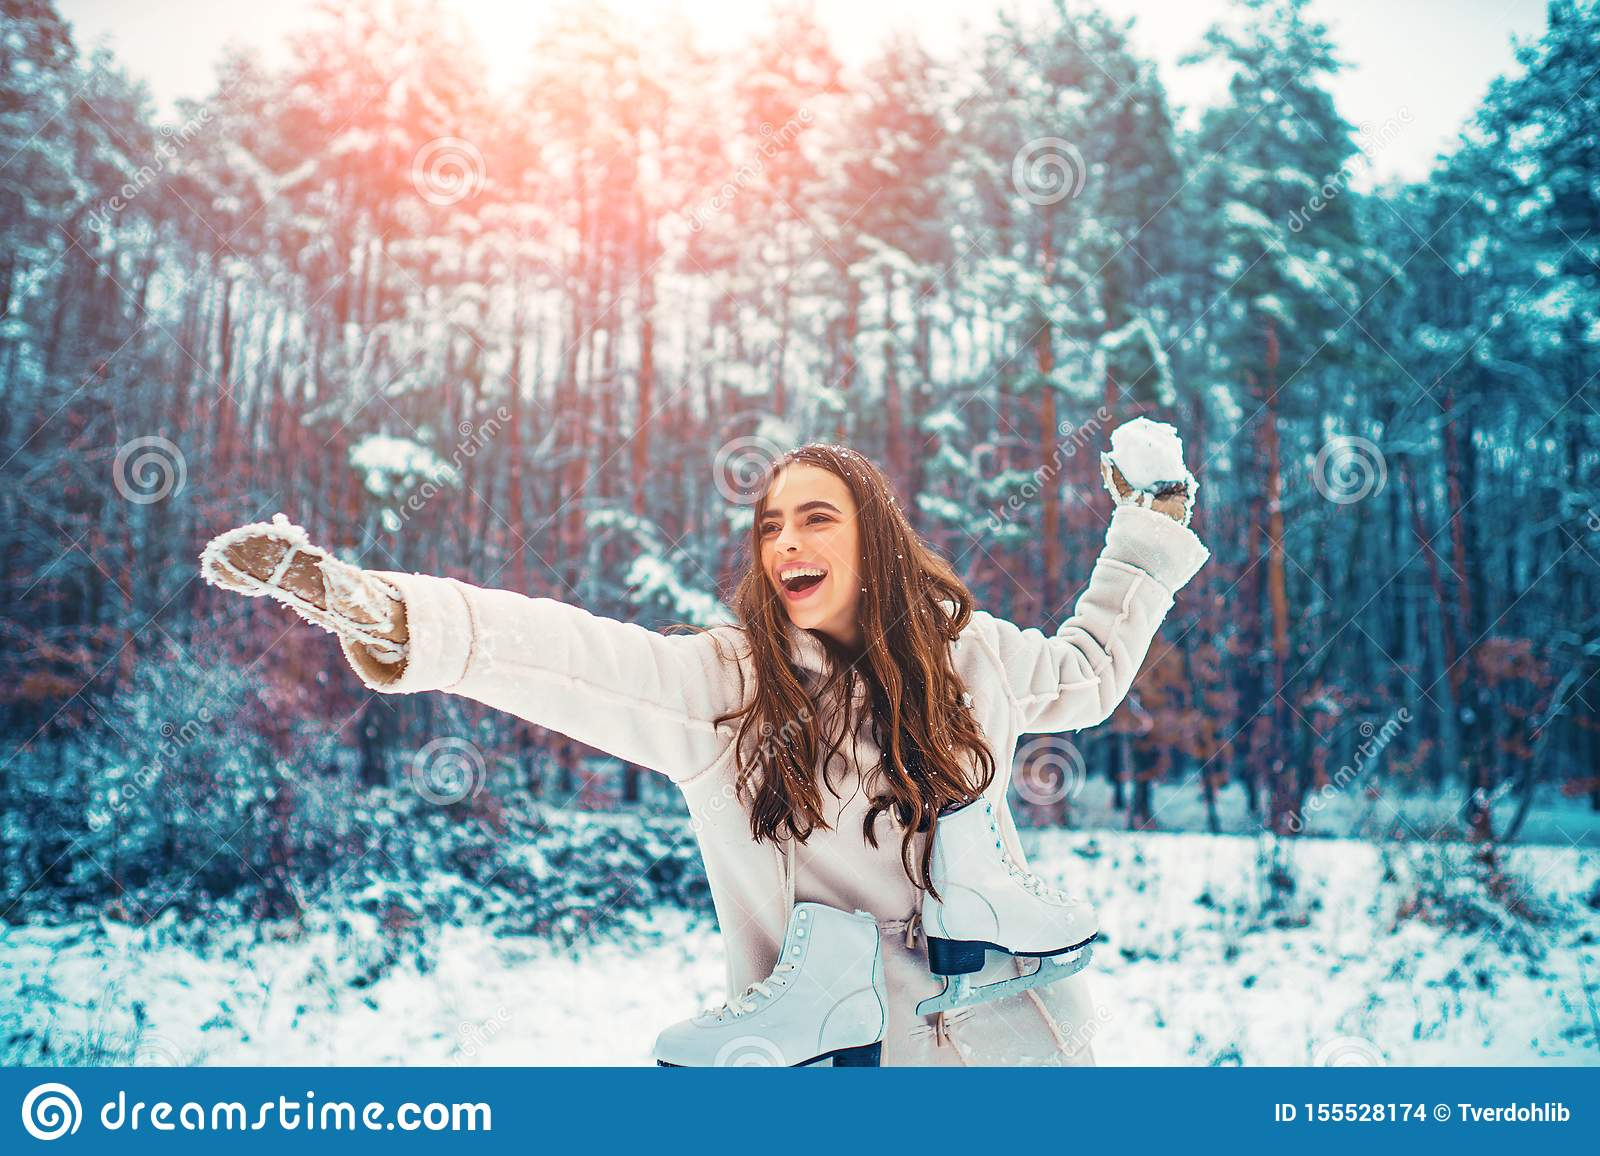 Winter woman. Outdoor portrait of young beautiful girl with long hair.